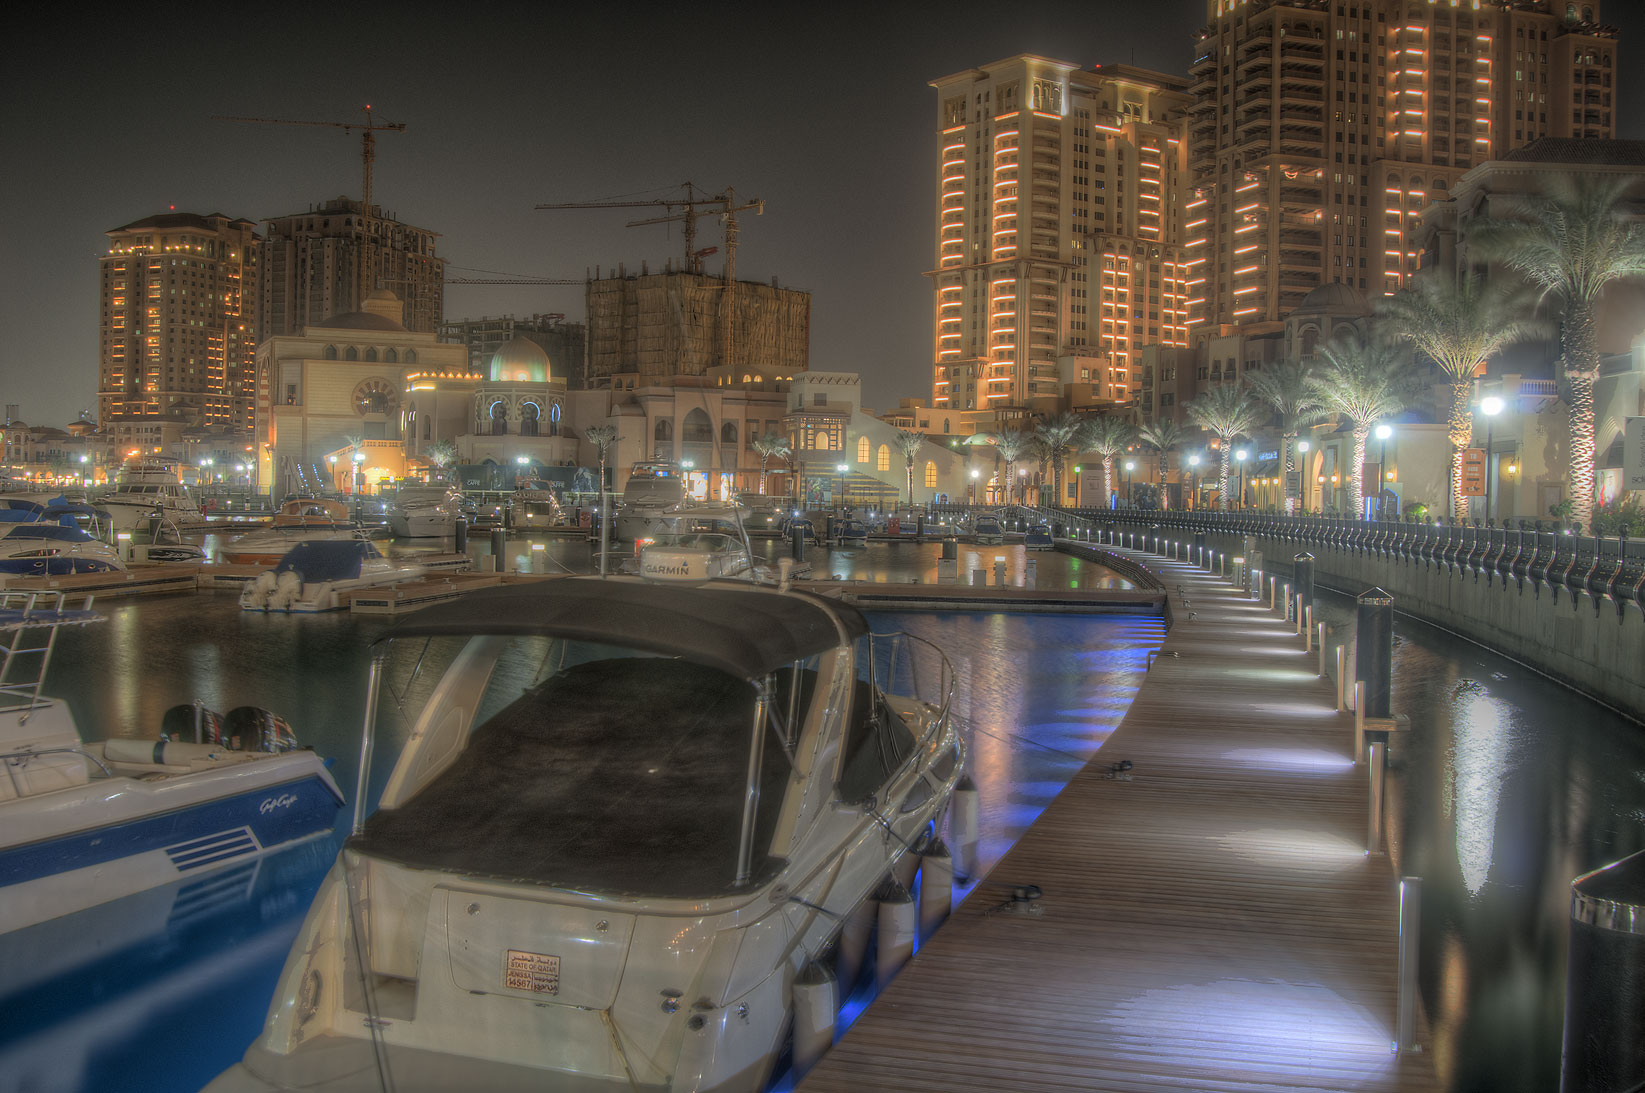 Boat harbor in Porto Arabia in the Pearl Qatar development. Doha, Qatar